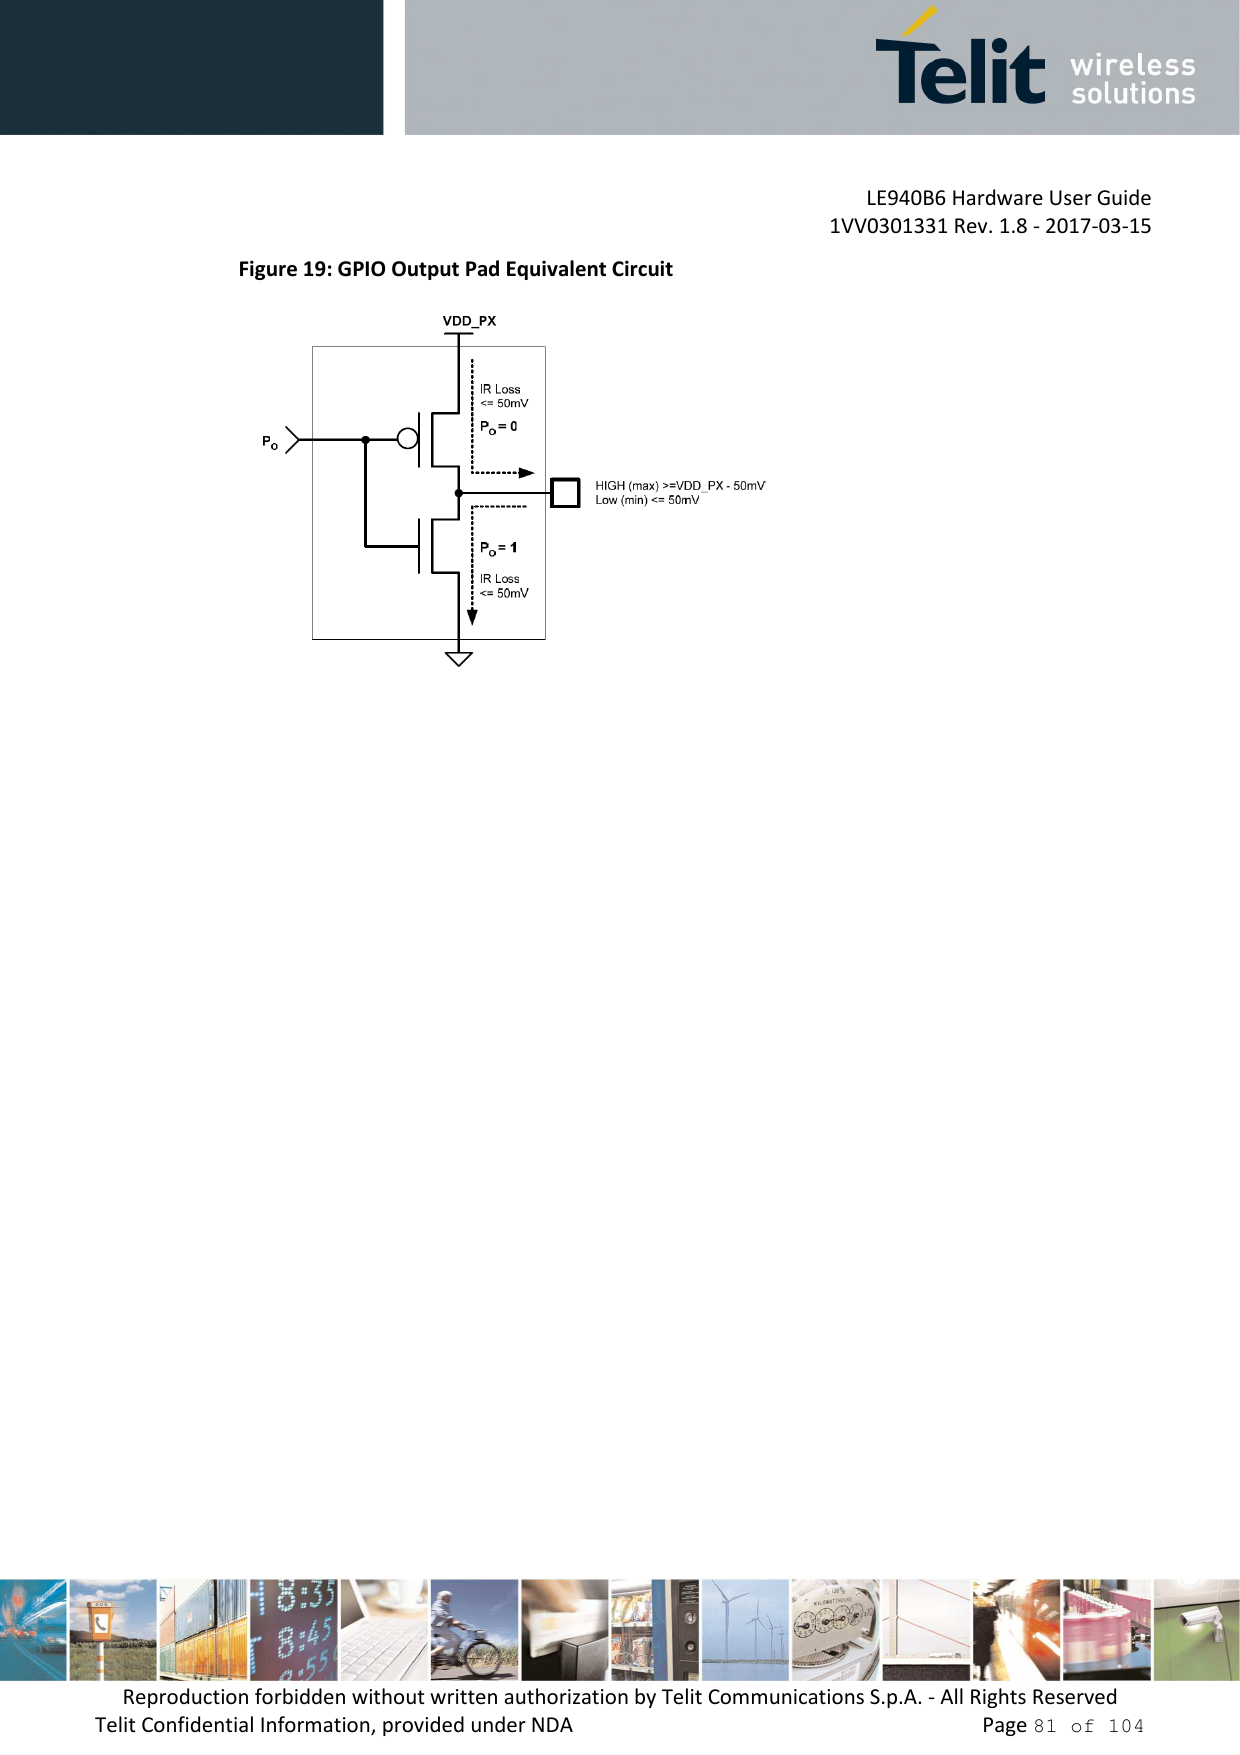 LE940B6 Hardware User Guide     1VV0301331 Rev. 1.8 - 2017-03-15 Reproduction forbidden without written authorization by Telit Communications S.p.A. - All Rights Reserved Telit Confidential Information, provided under NDA                 Page 81 of 104 Figure 19: GPIO Output Pad Equivalent Circuit